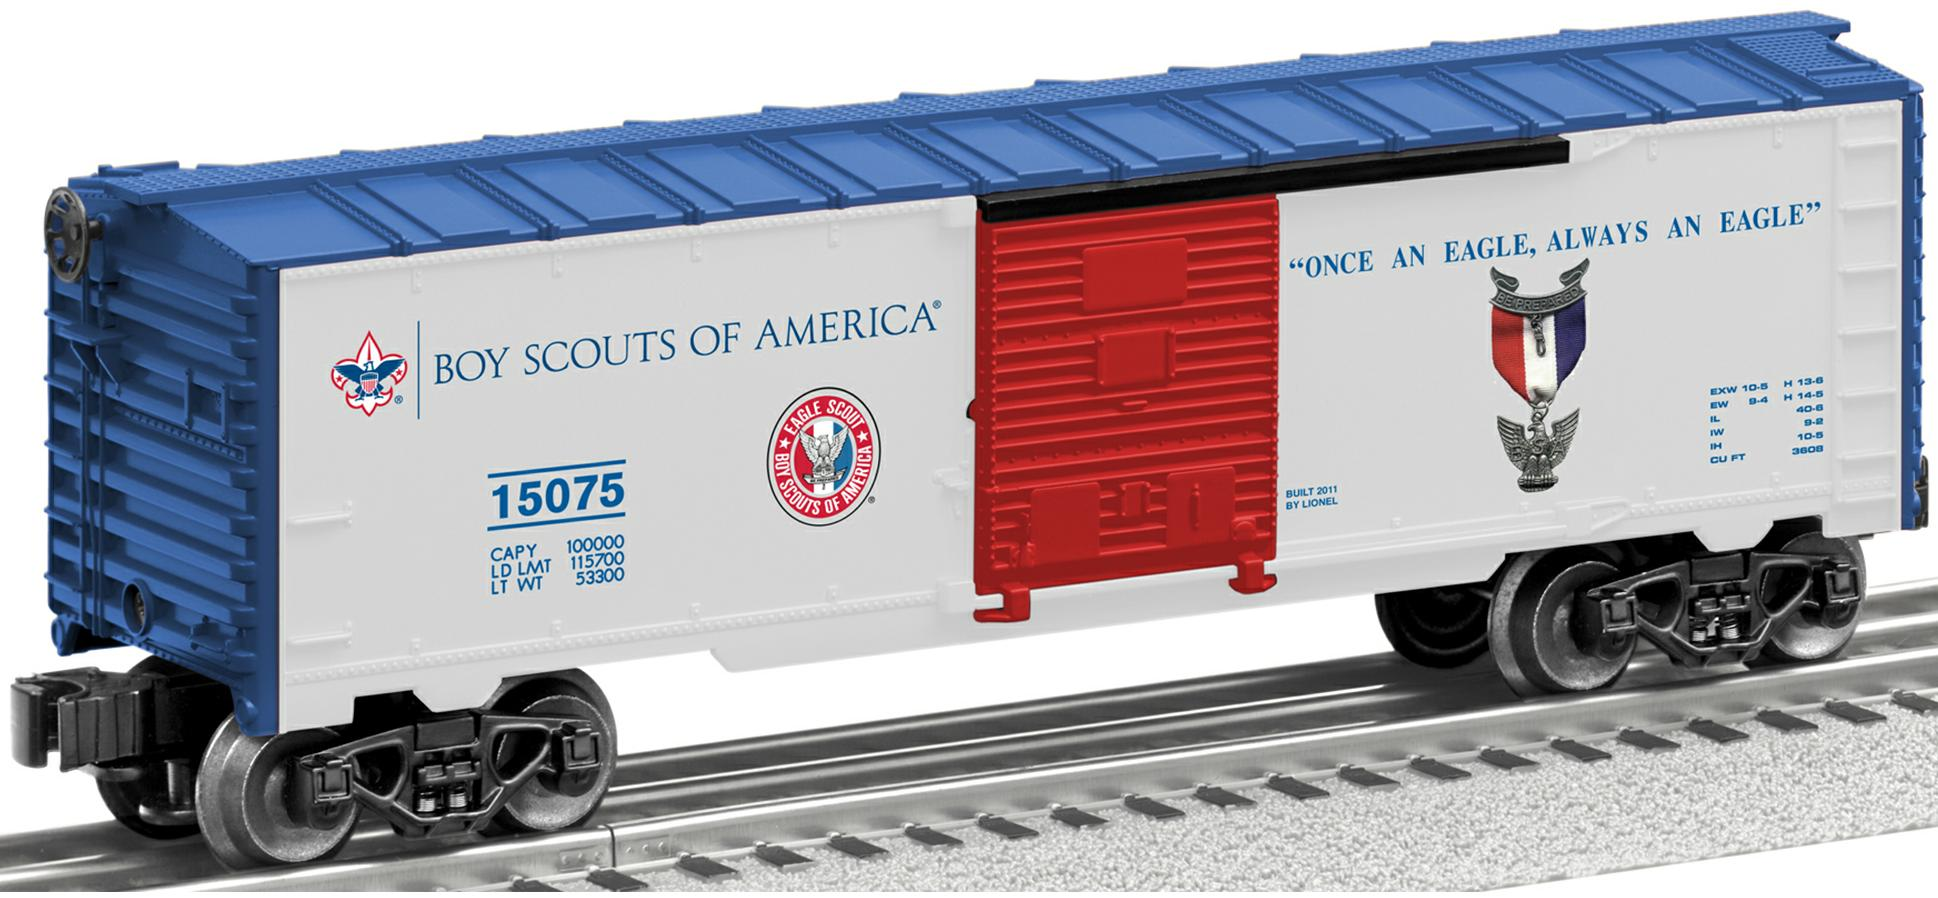 Boy Scouts of America® 'Eagle Scout' Boxcar image